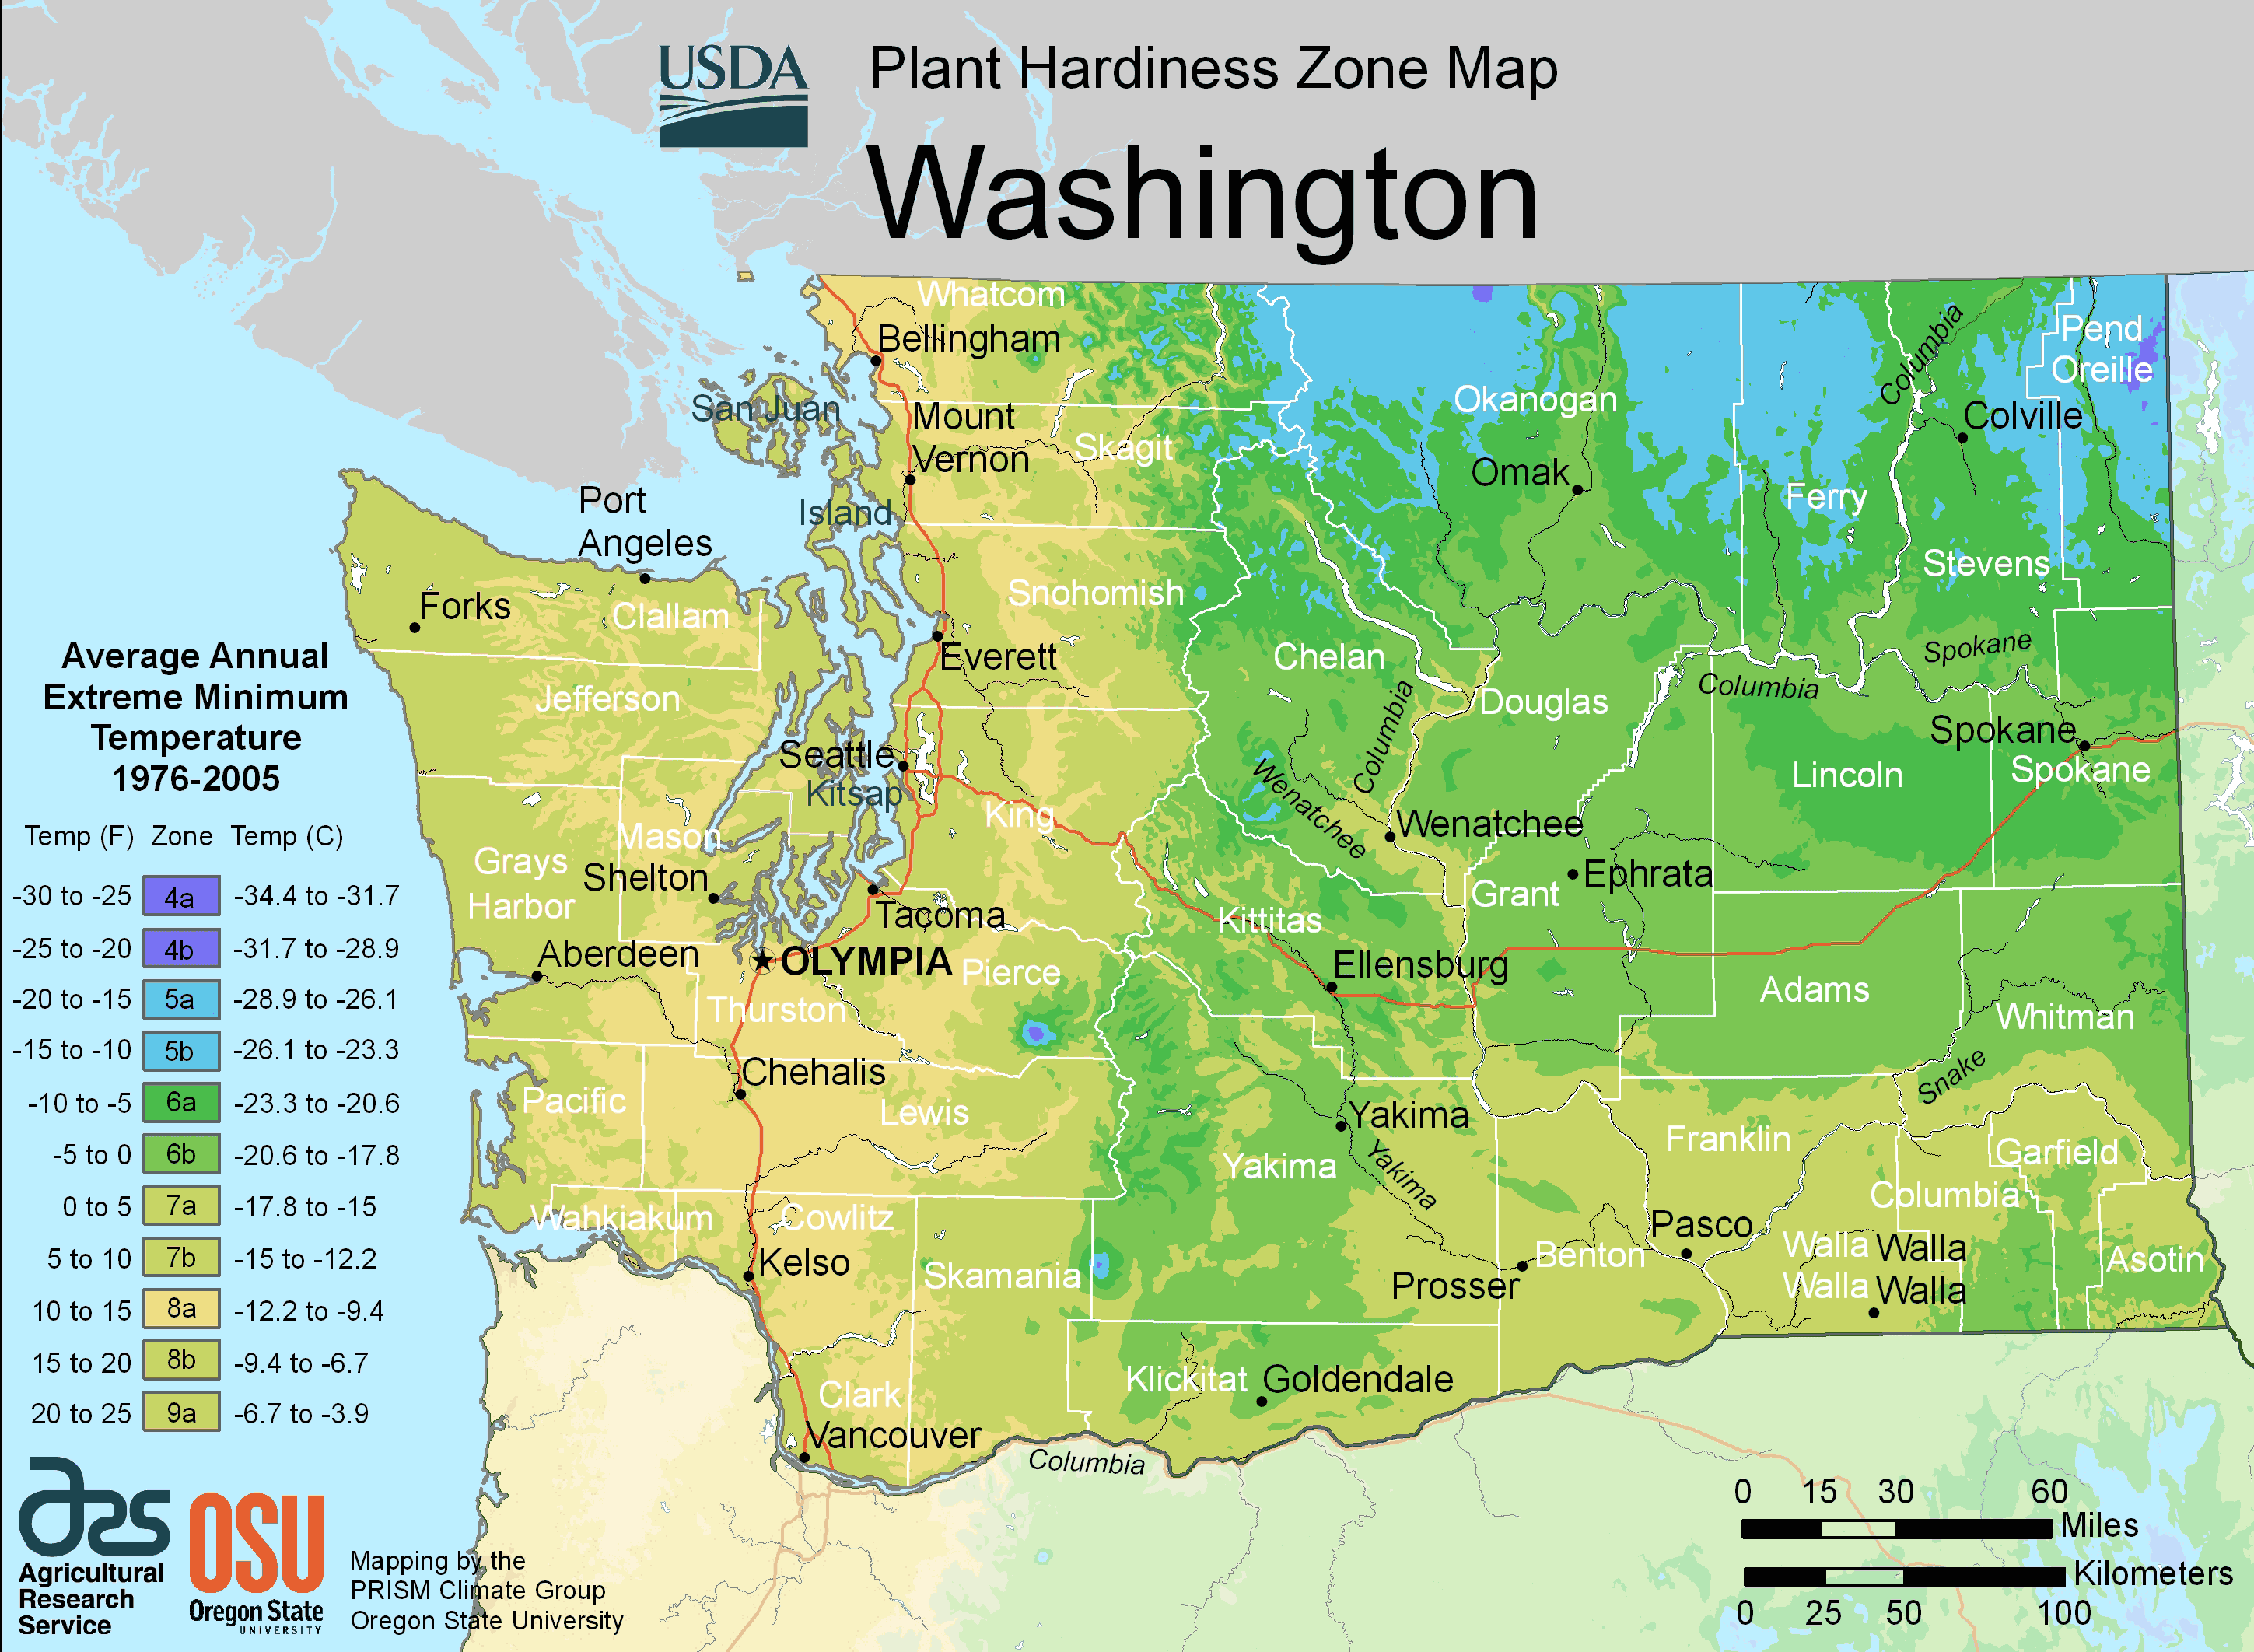 Washington Plant Hardiness Zone Map